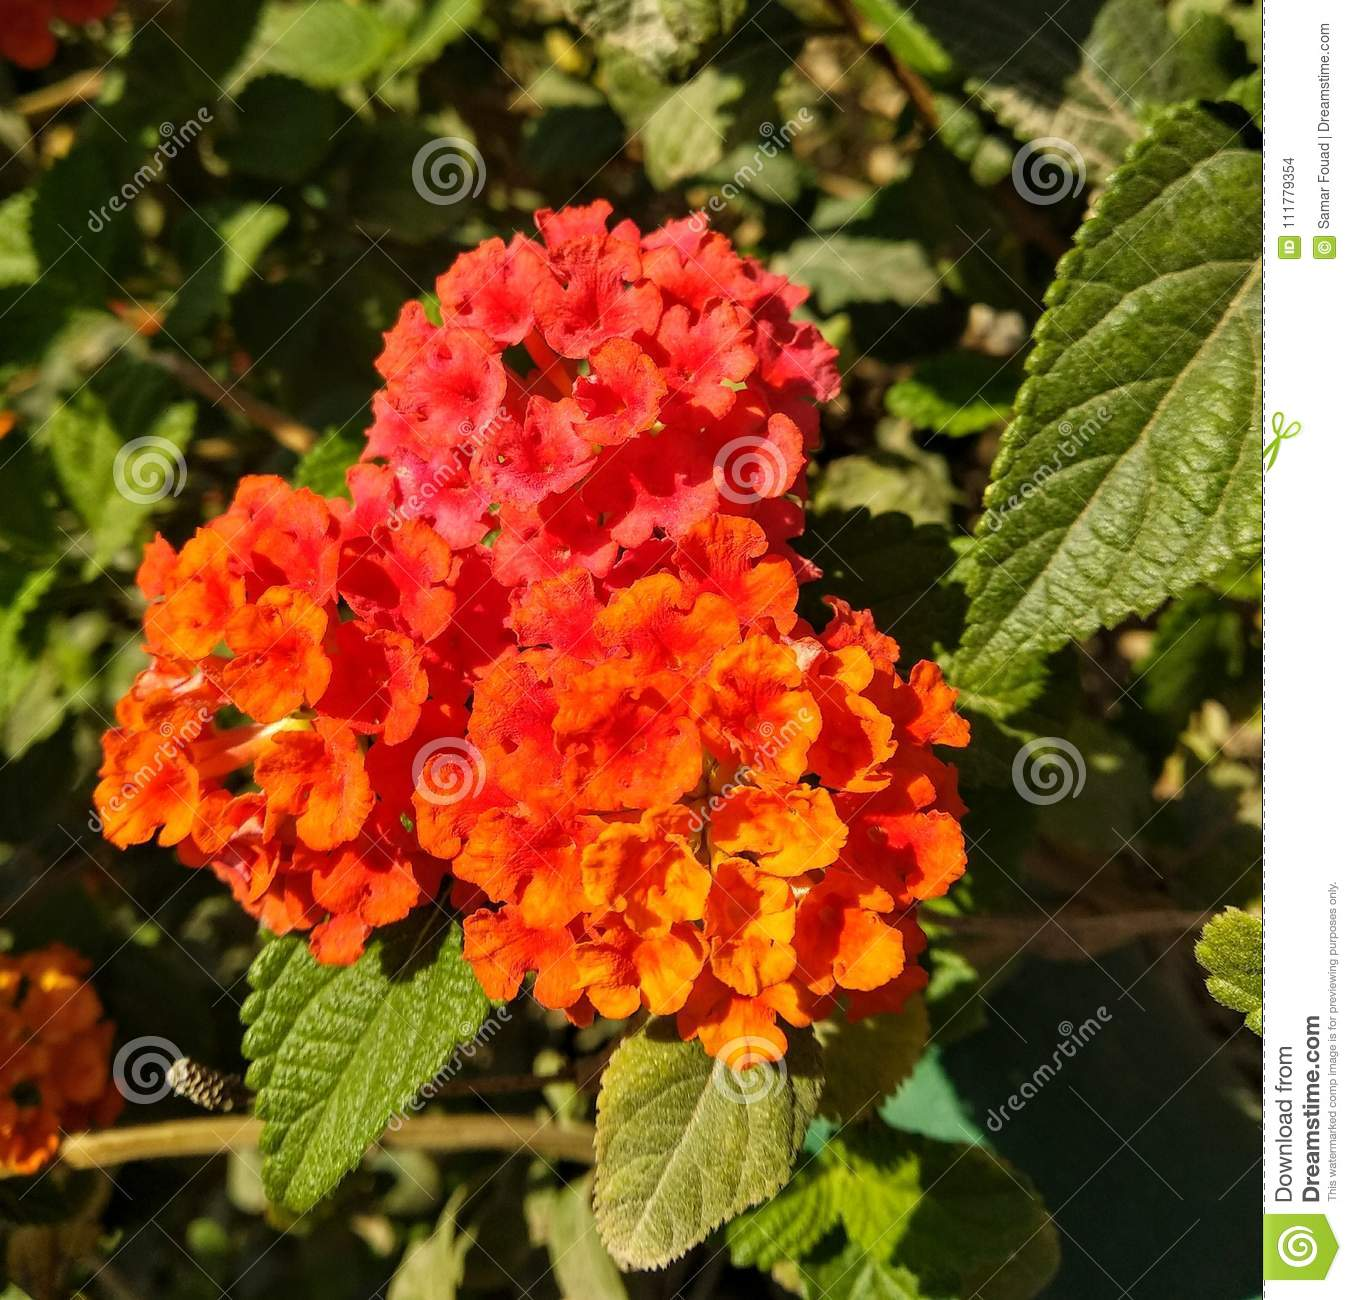 Orange and red flowers